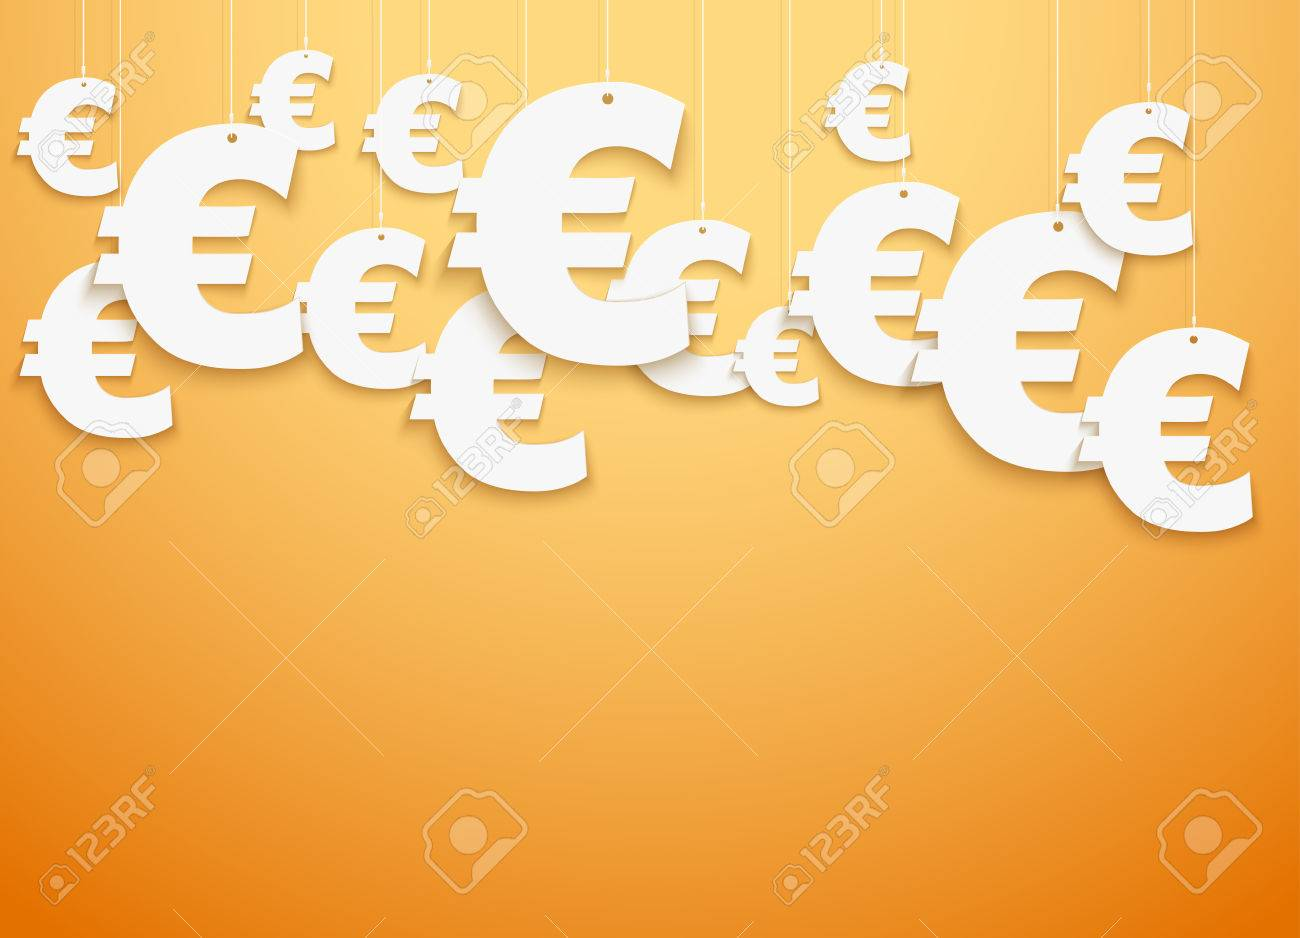 Bright Background Of Hung Symbols Euro With Space For Text